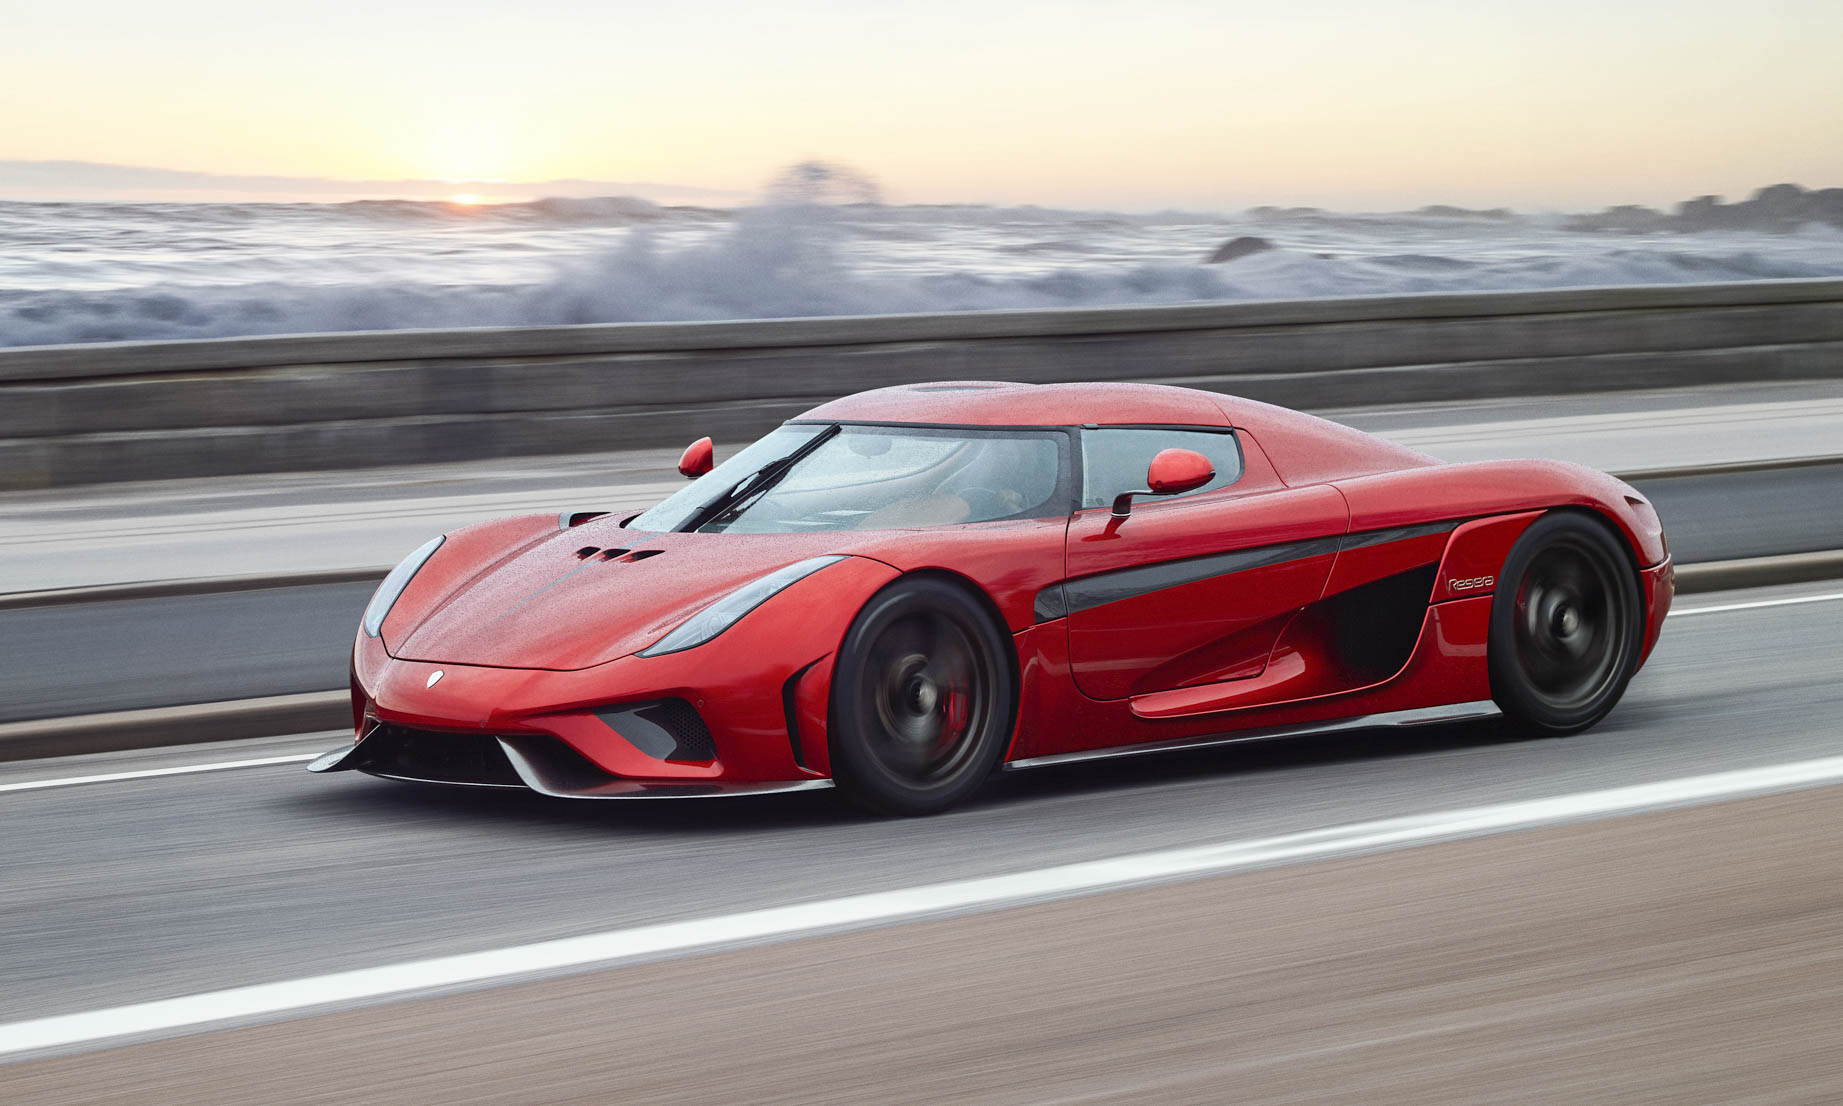 © Koenigsegg Automotive AB